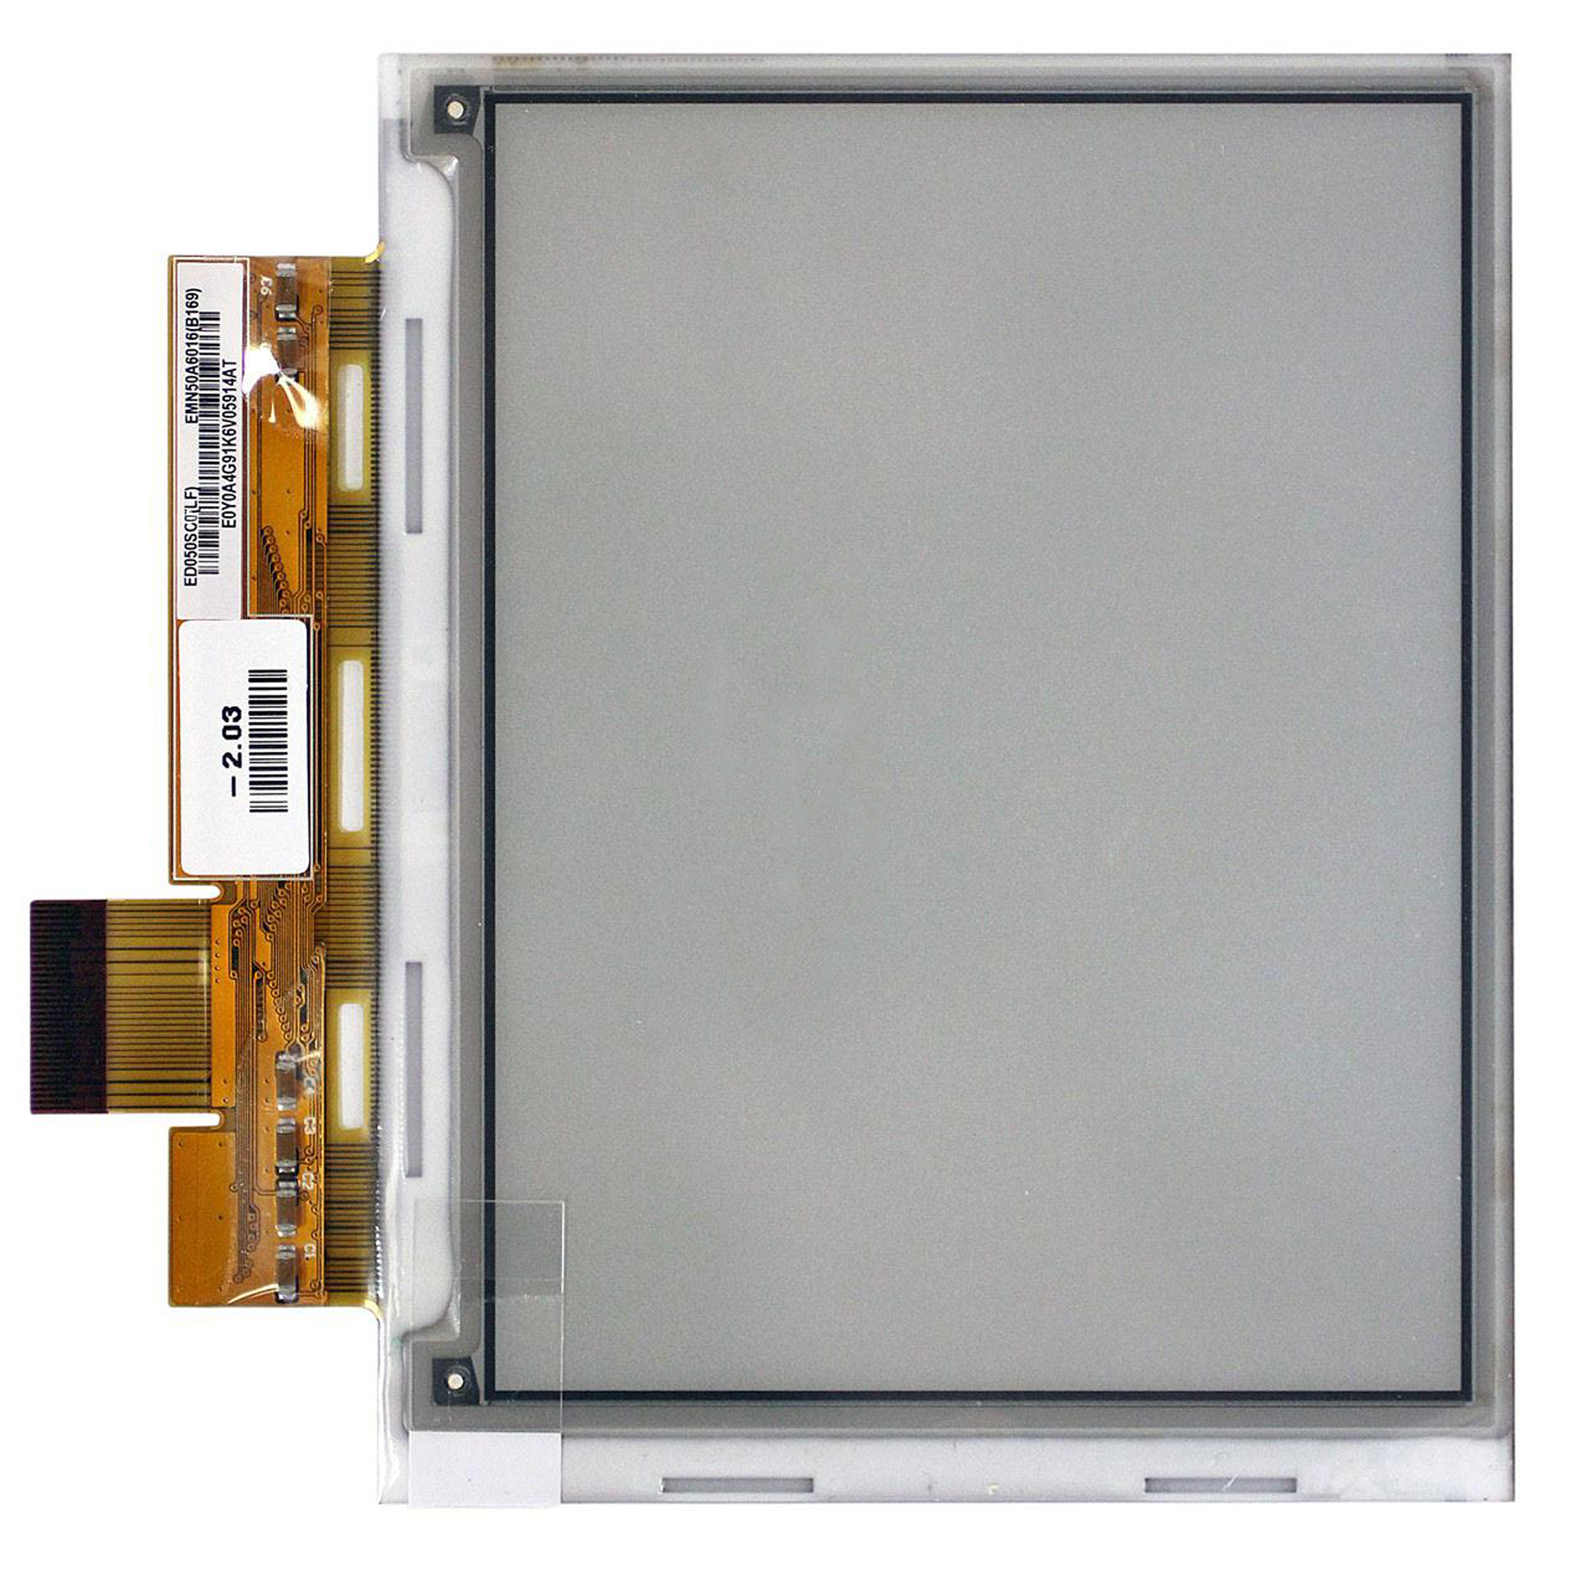 100% Original New 100% ED050SC5 5 e-ink for pocketbook 515 Reader lcd Display free shipping 72PCS/Lot new original 5 inch e ink lcd display screen for pocketbook 360 ed050sc3 lf